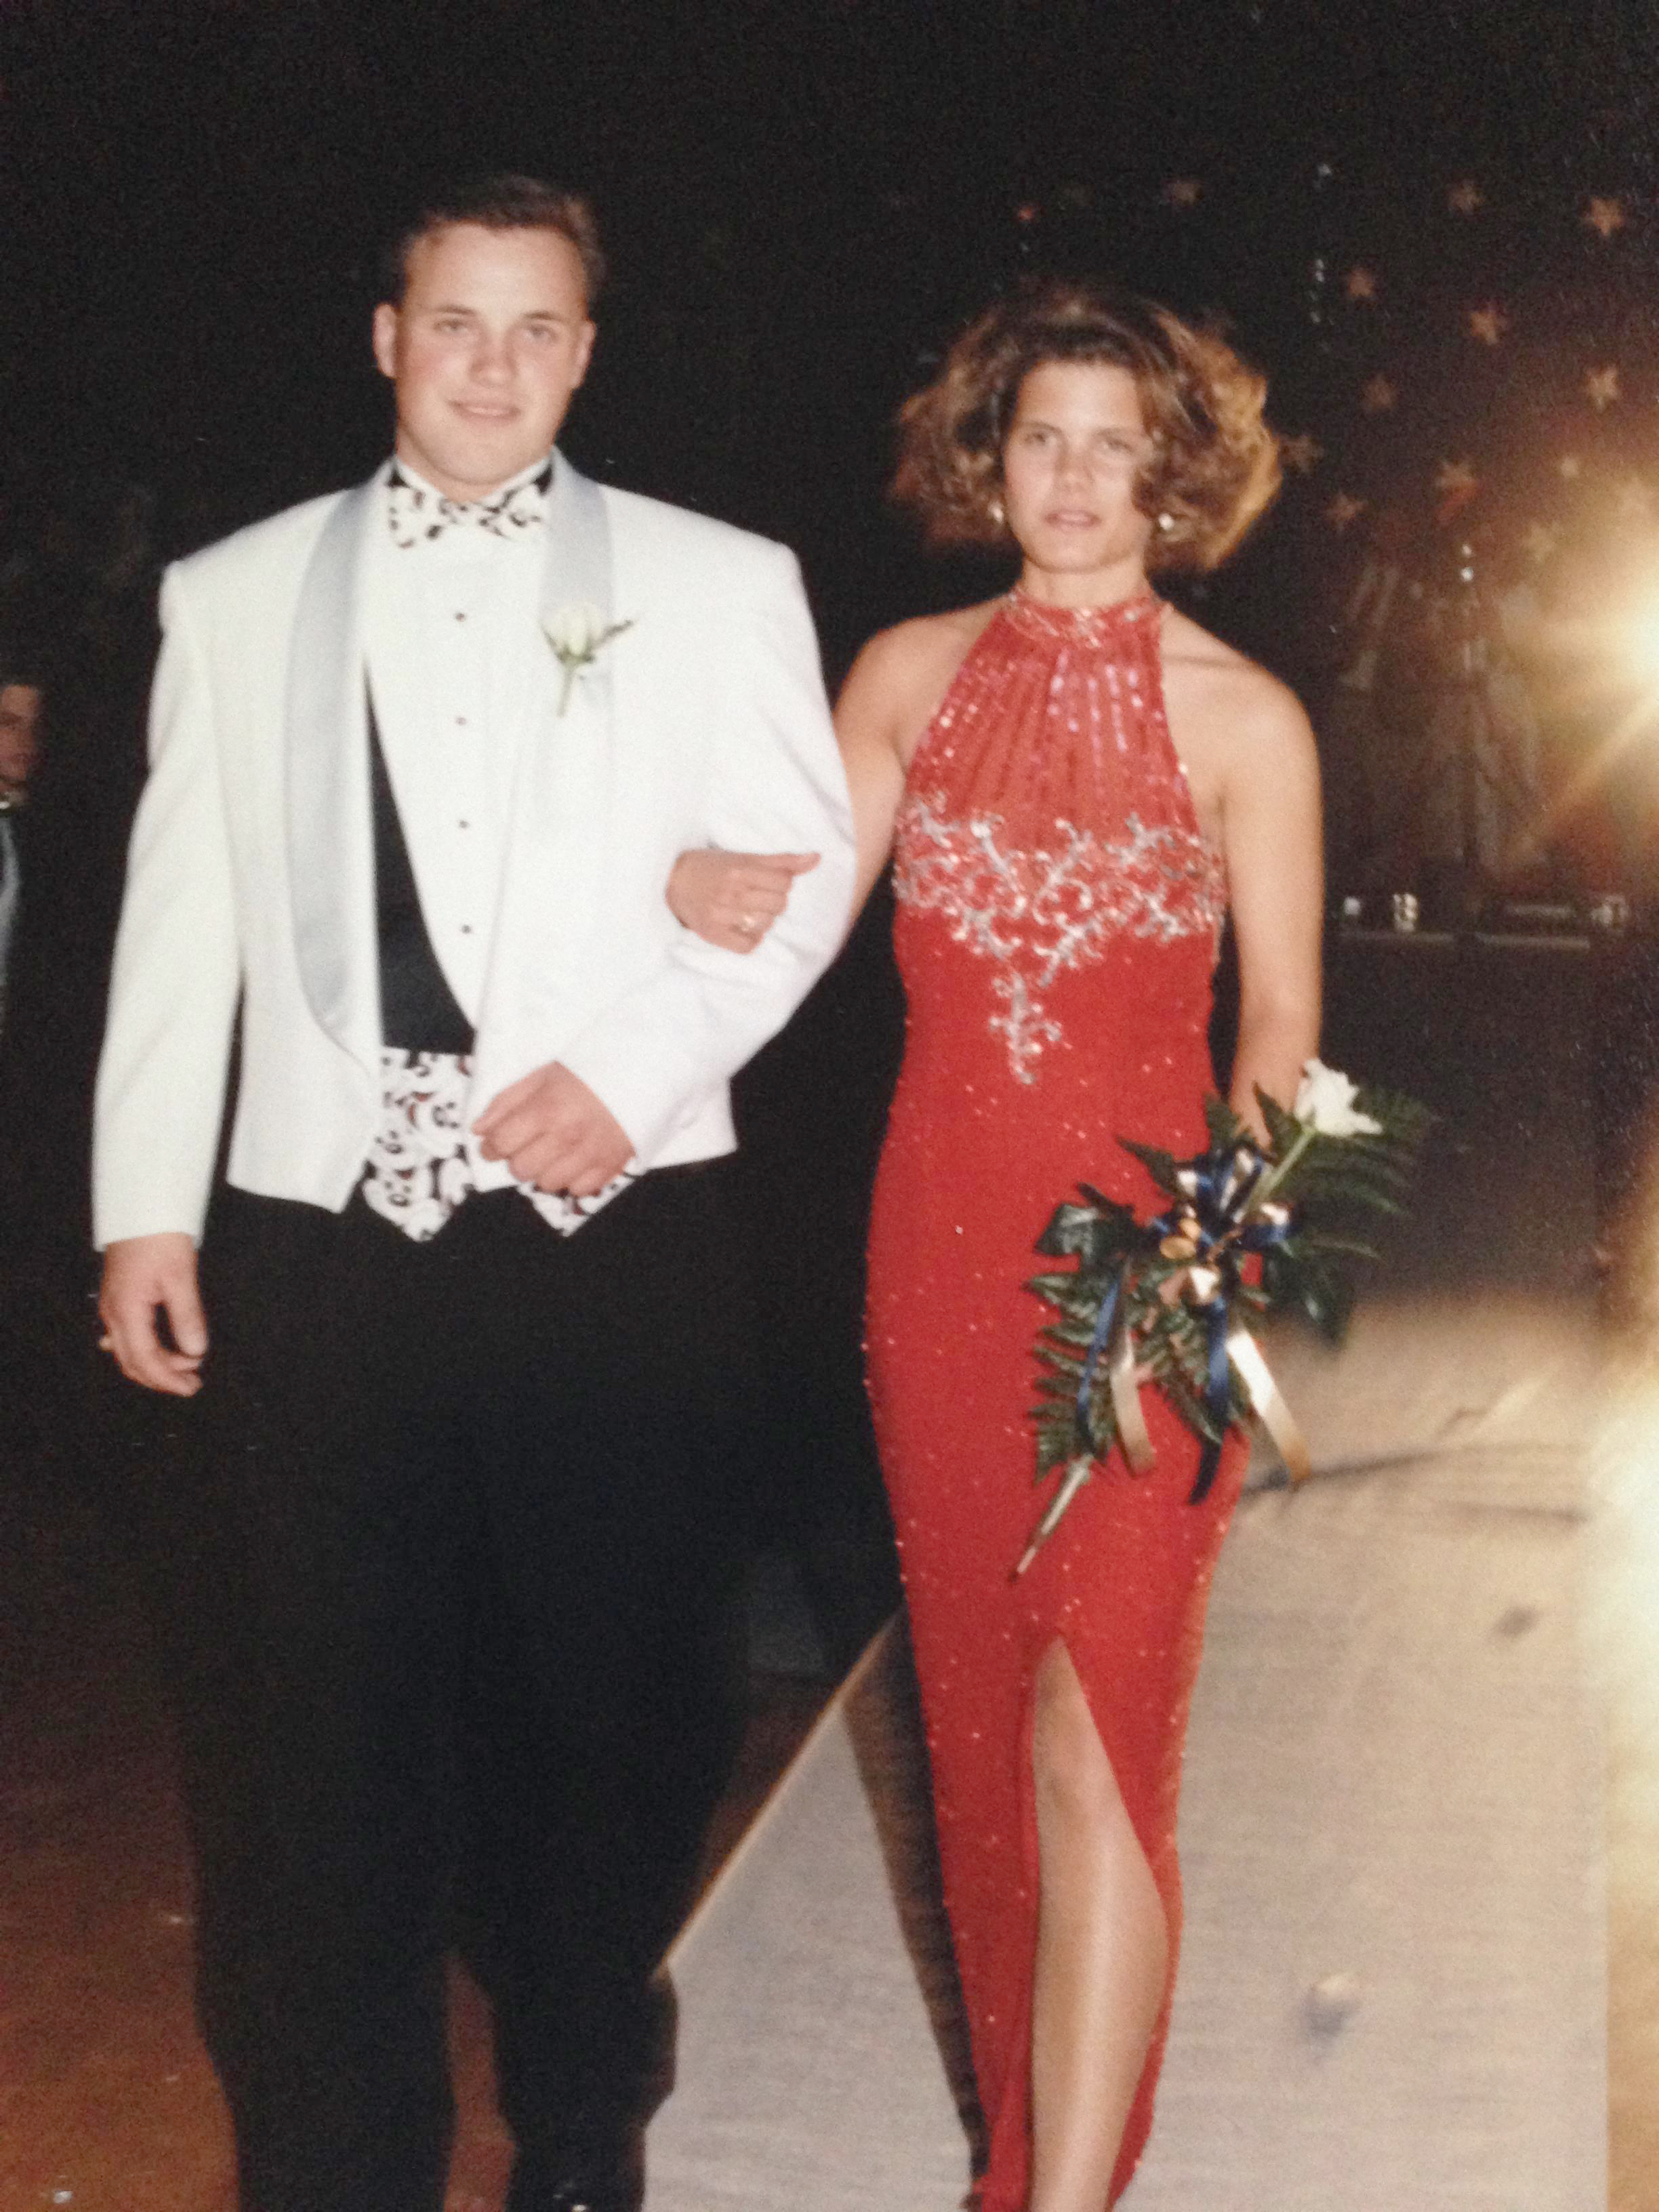 Jana Shortal as prom queen with a male prom goer on her arm